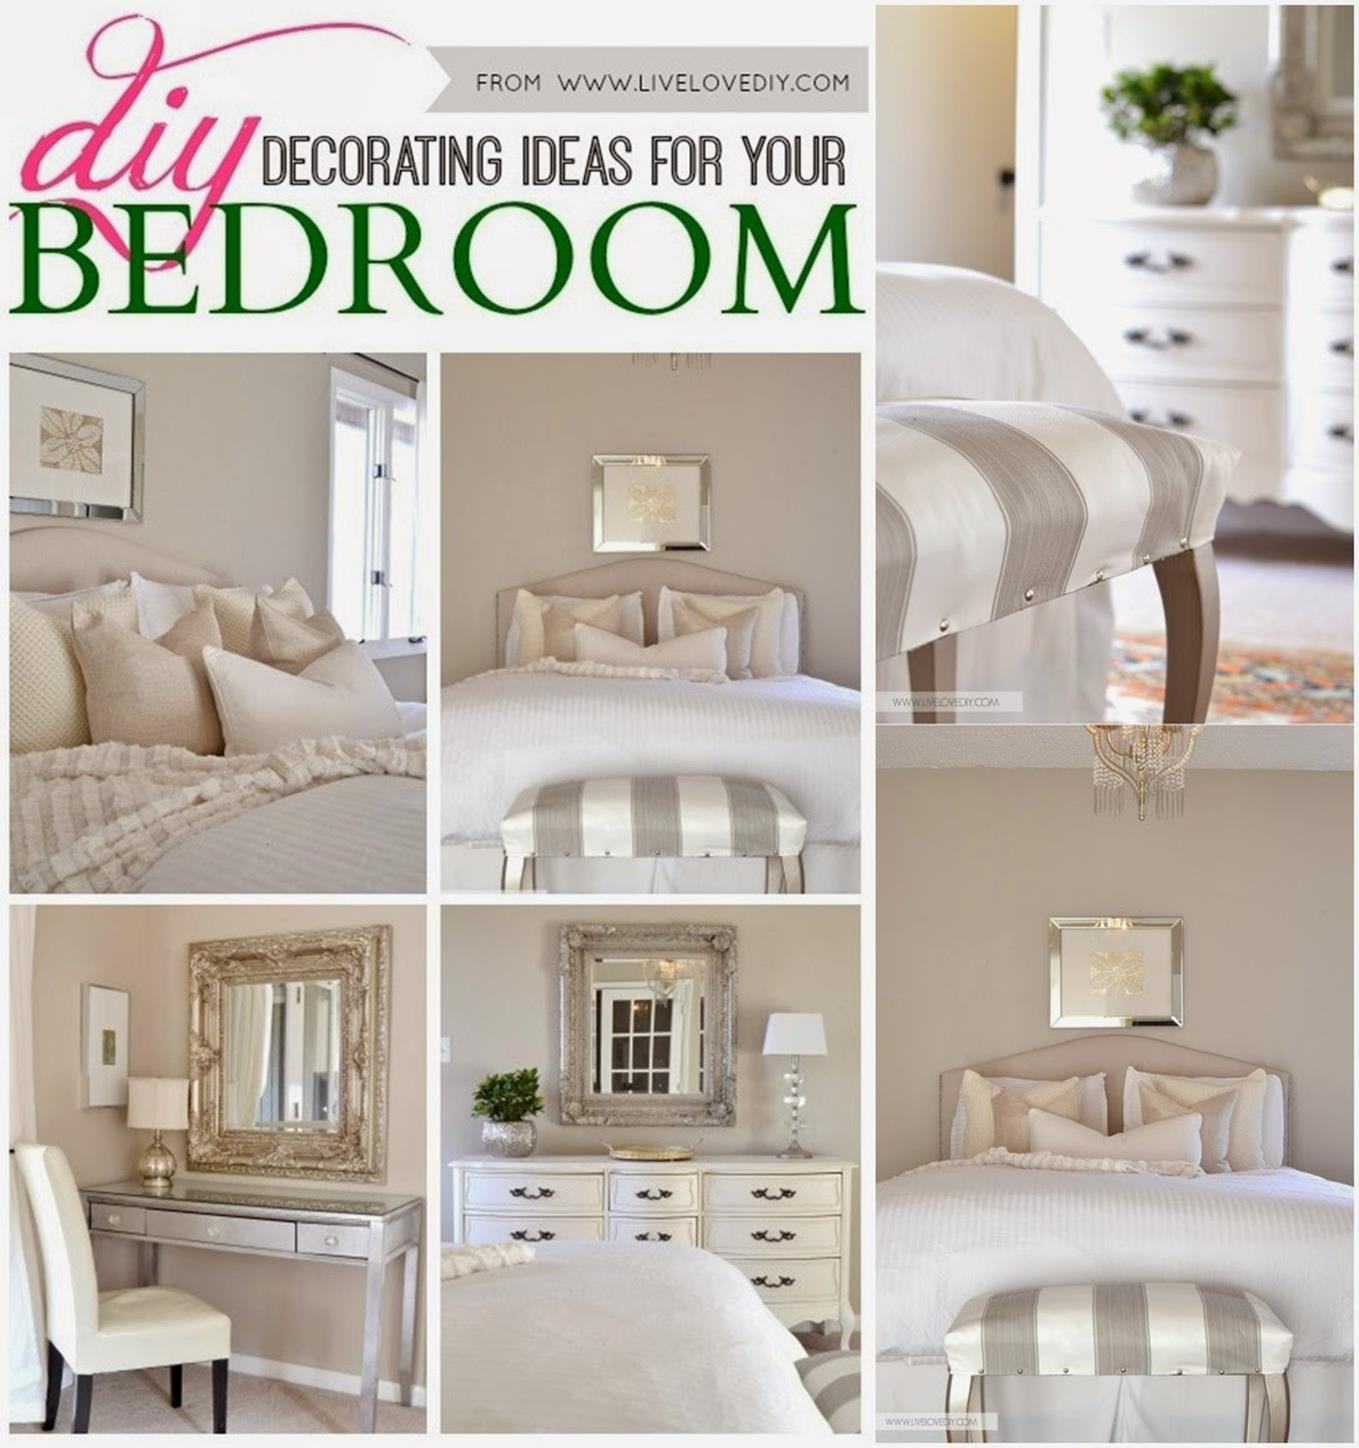 20 Decorating Tricks For Your Bedroom: Perfect Bedroom Decorating Idea For Craft 20